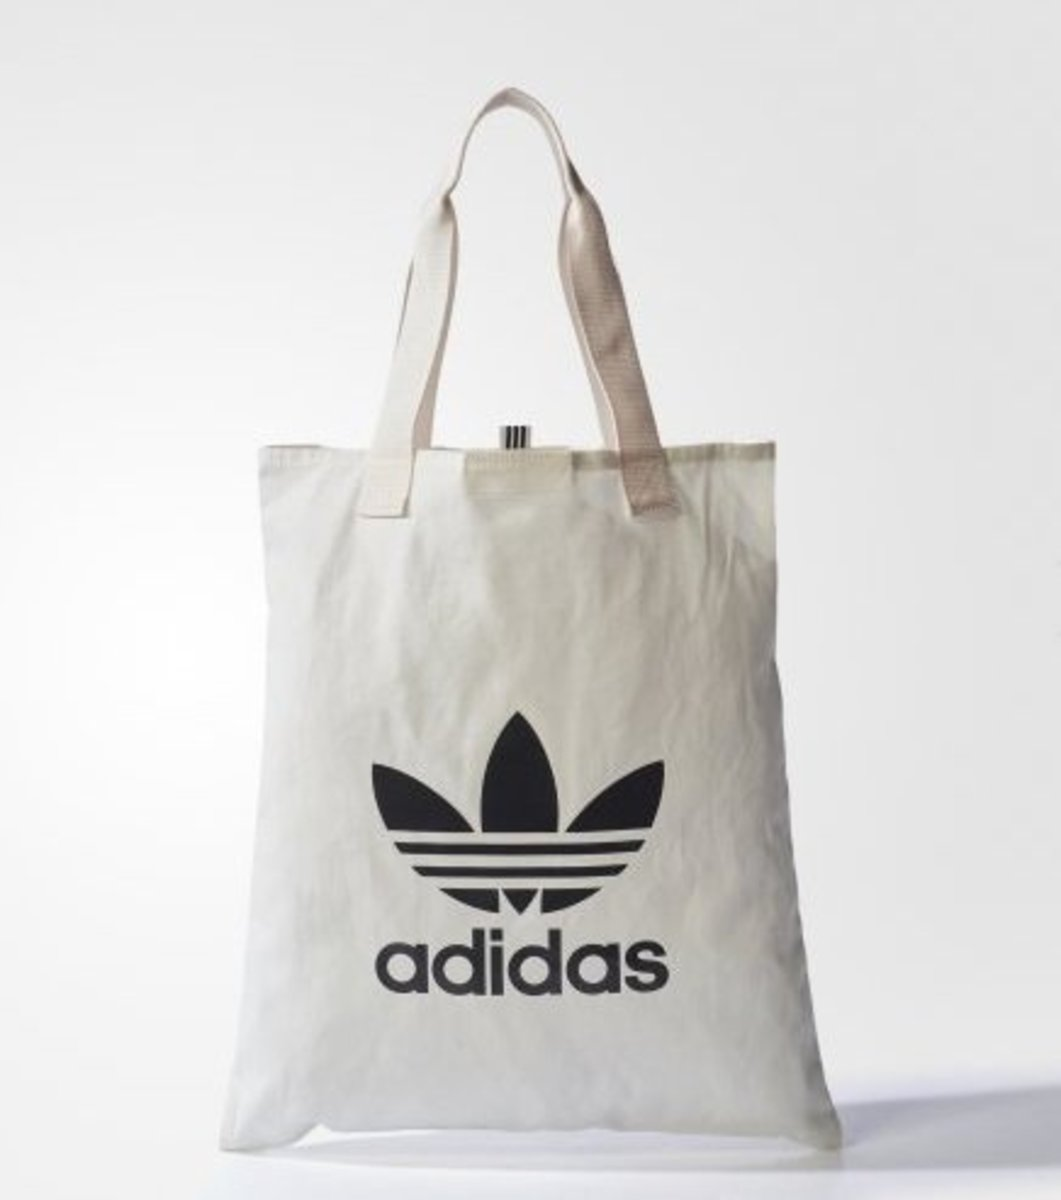 (White Tote Bag) Japan❤️adidas Originals Casual Tote Bag in Simplicity Style